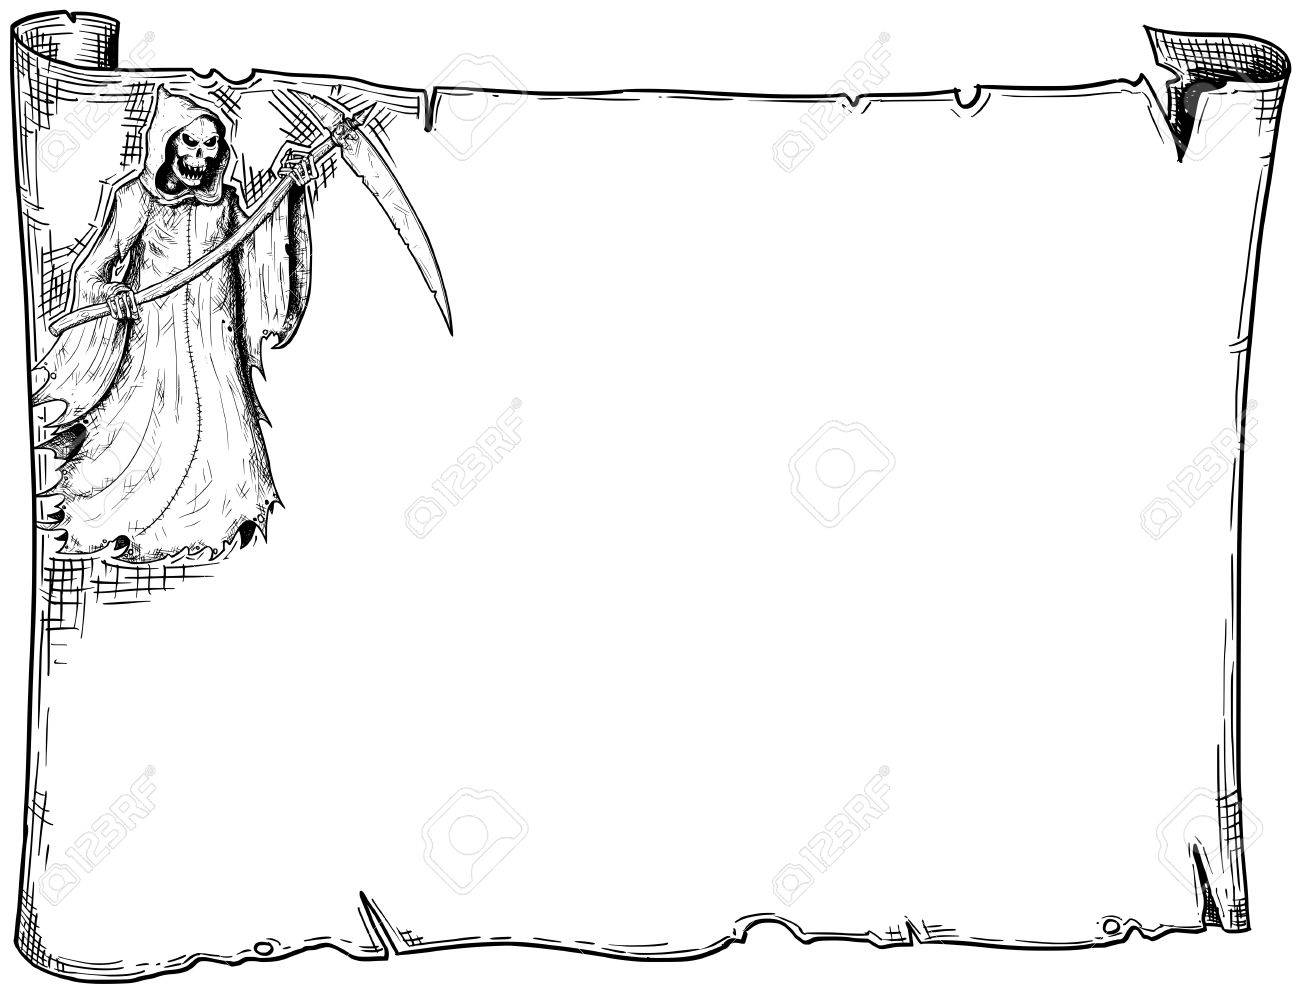 hand drawing cartoon halloween frame scroll sheet of parchment with grim reaper illustrations stock vector - Halloween Sheet